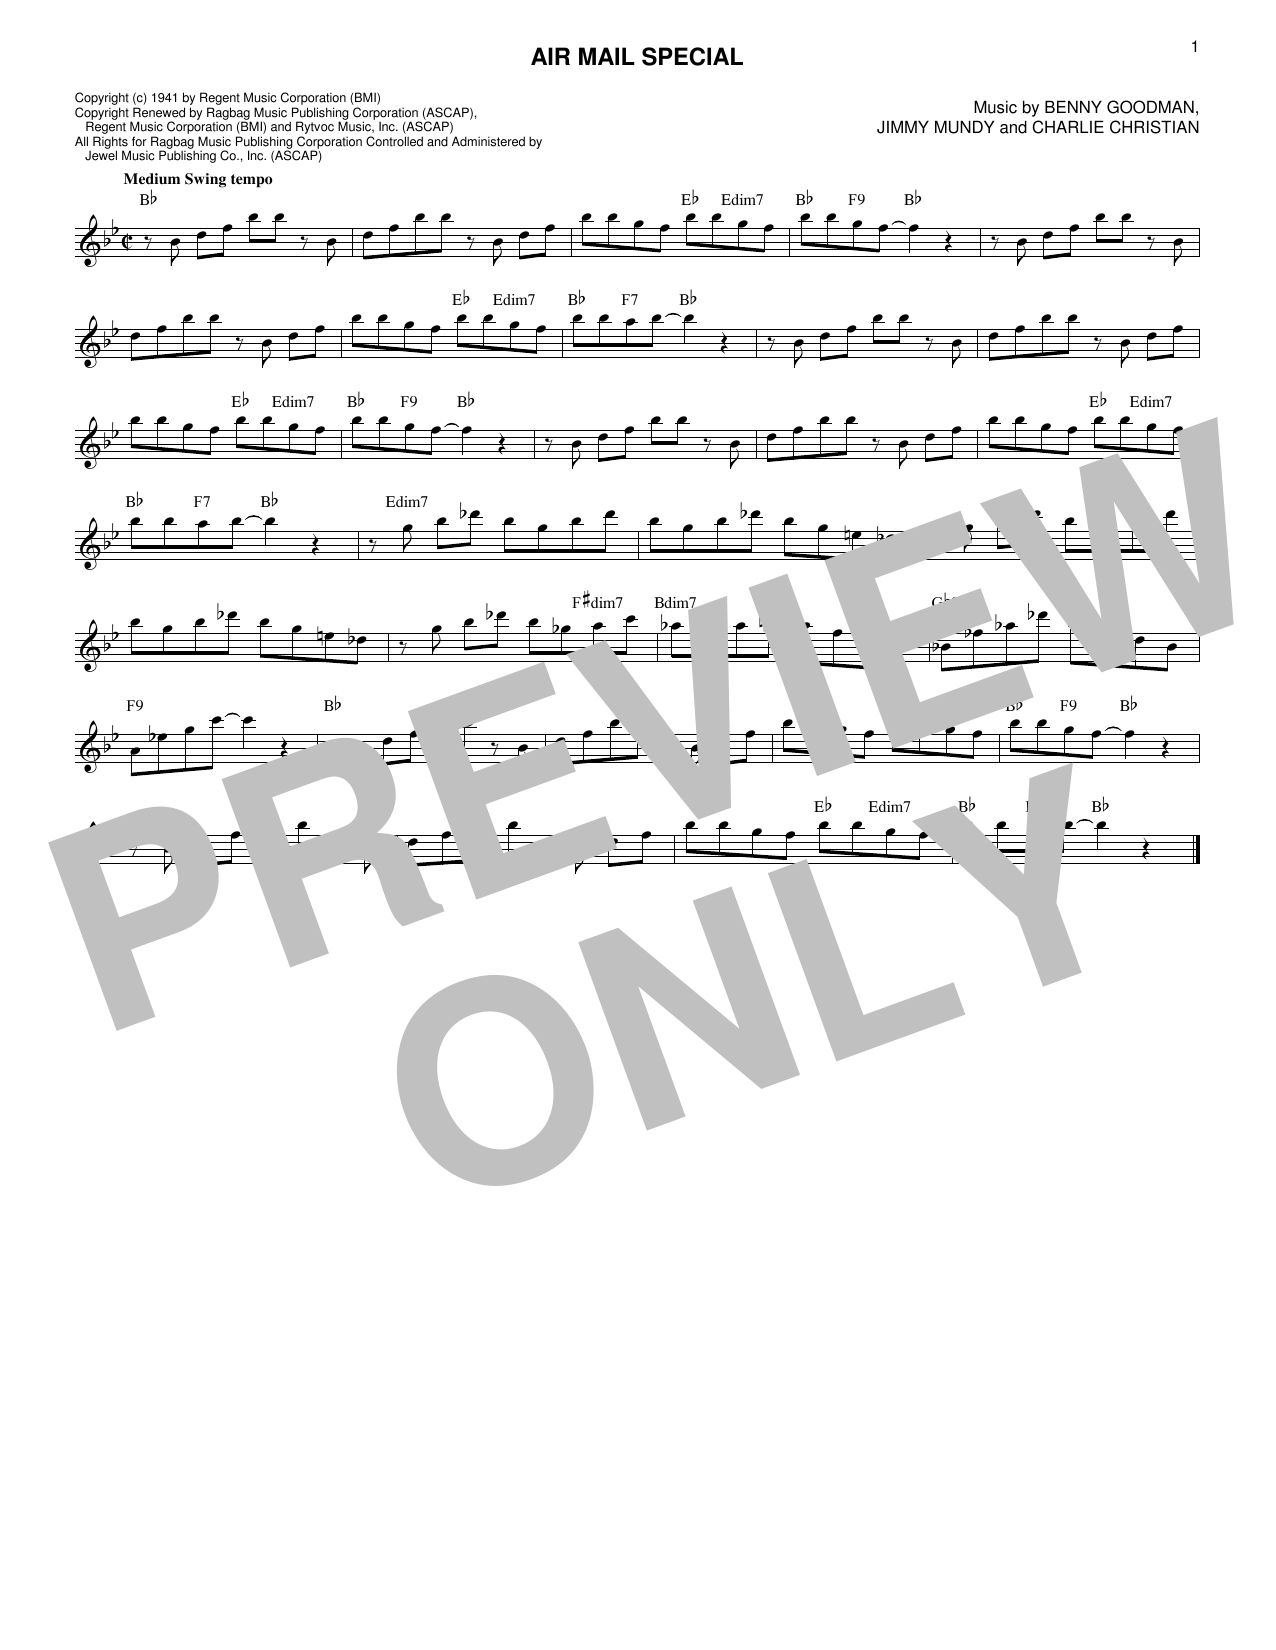 Benny Goodman & His Orchestra Air Mail Special sheet music notes and chords